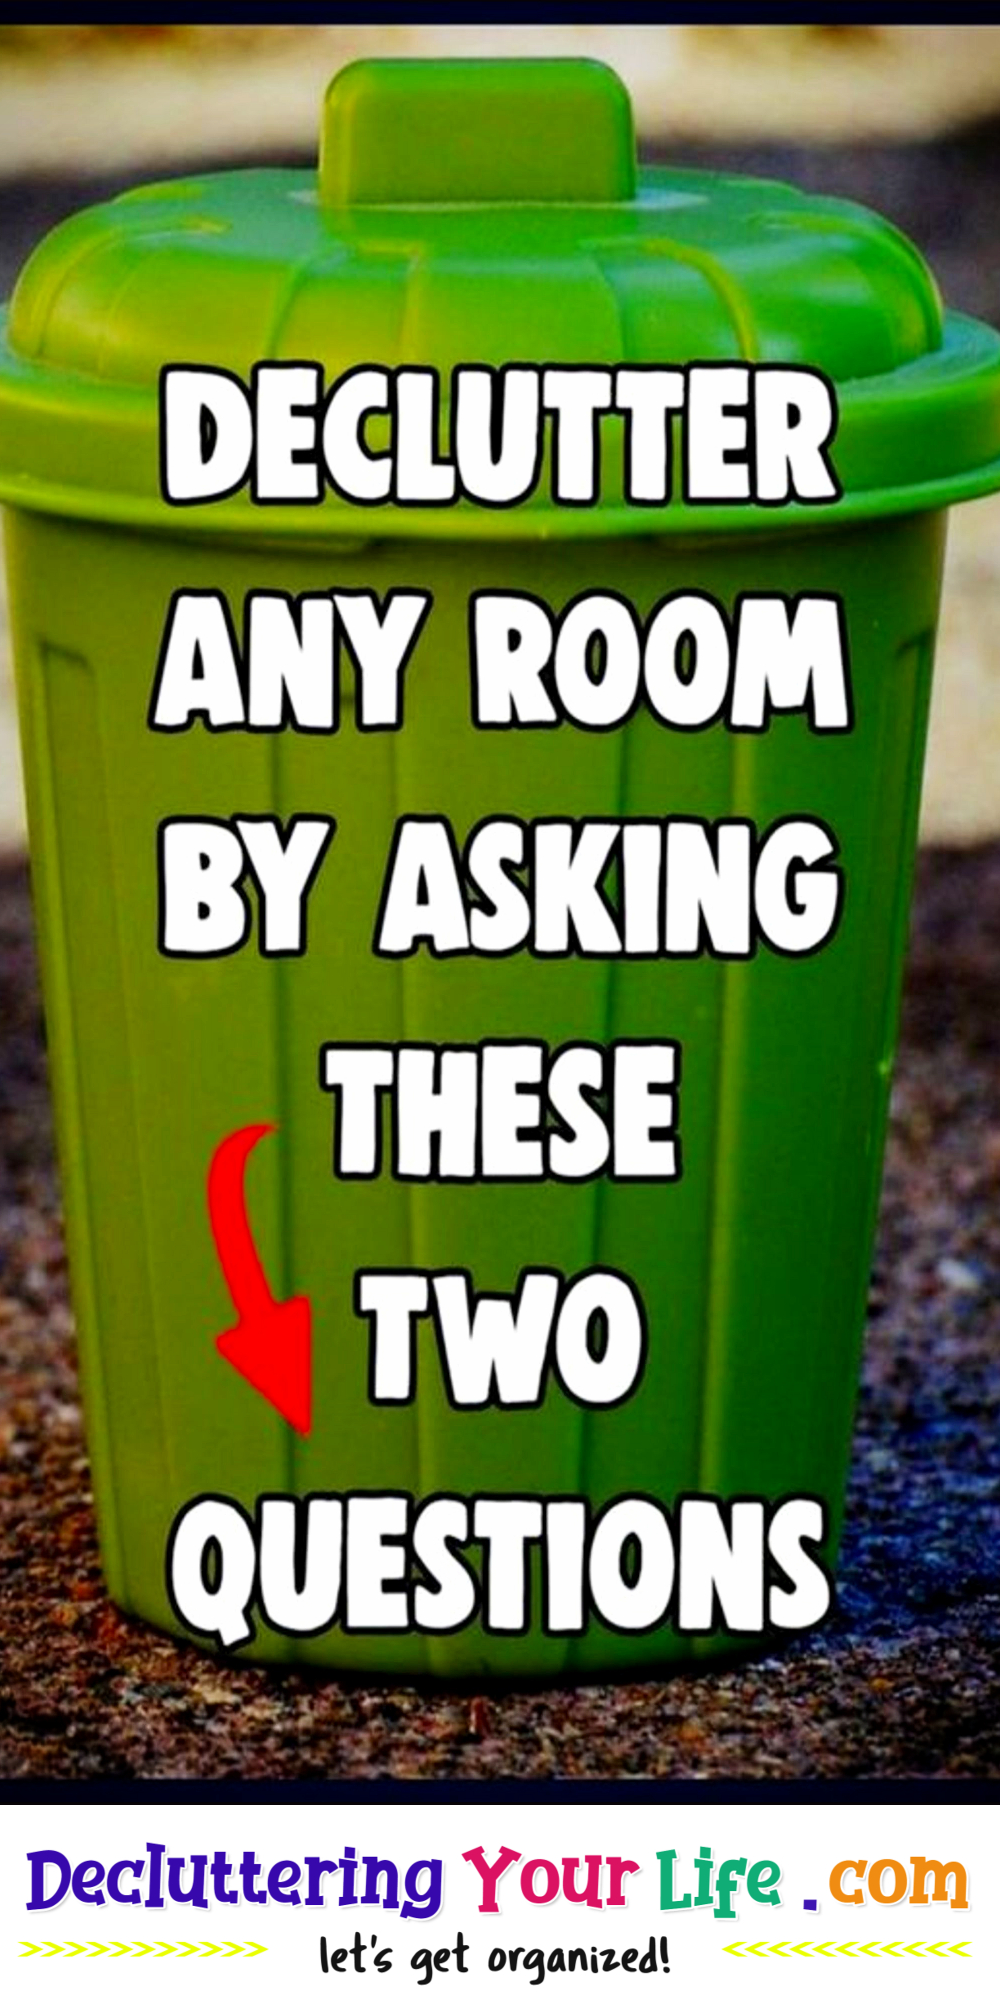 How to deal with clutter where to start uncluttering your home - Go from cluttered mess to organized success with my Decluttering Club Declutter Challenge tips monthly cleaning schedules to UNclutter your home without feeling overwhelmed or making decluttering mistakes - simple home clutter control solutions- realistic quick organization hacks decluttering ideas to declutter your life when clutter is overwhelming your house is a disaster of clutter piles